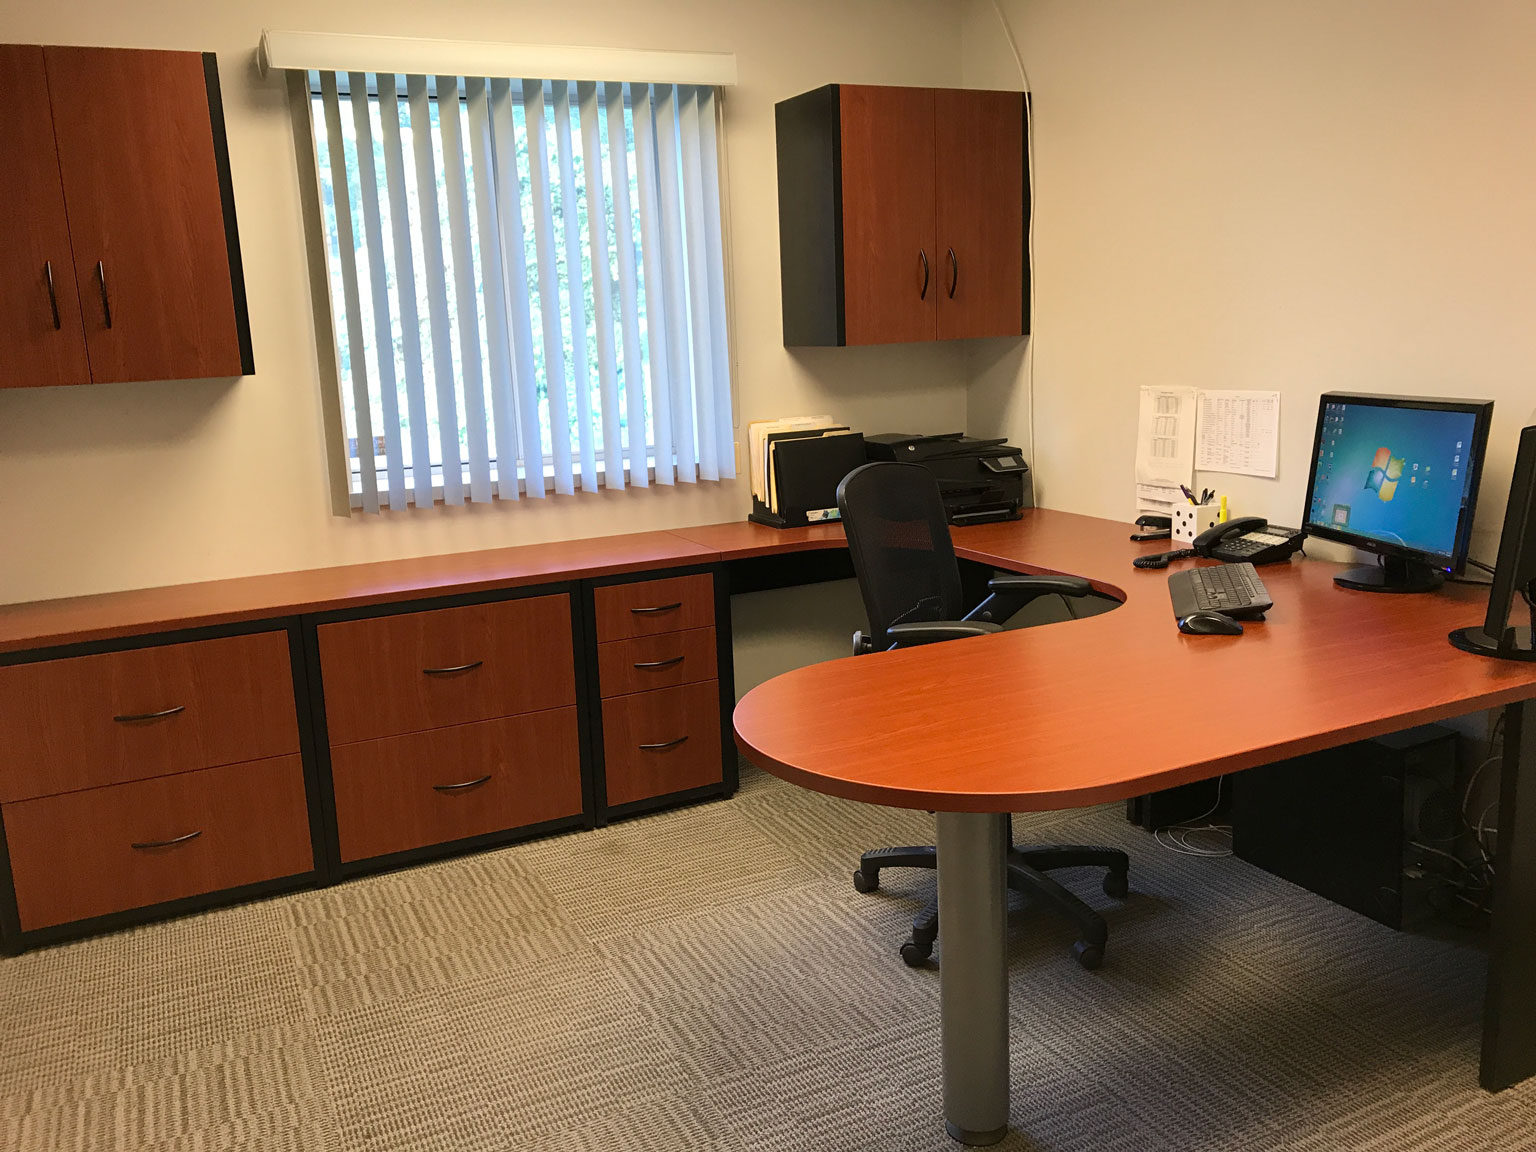 Office Furniture Desk Office Furniture And Work Surfaces Komponents Laminated